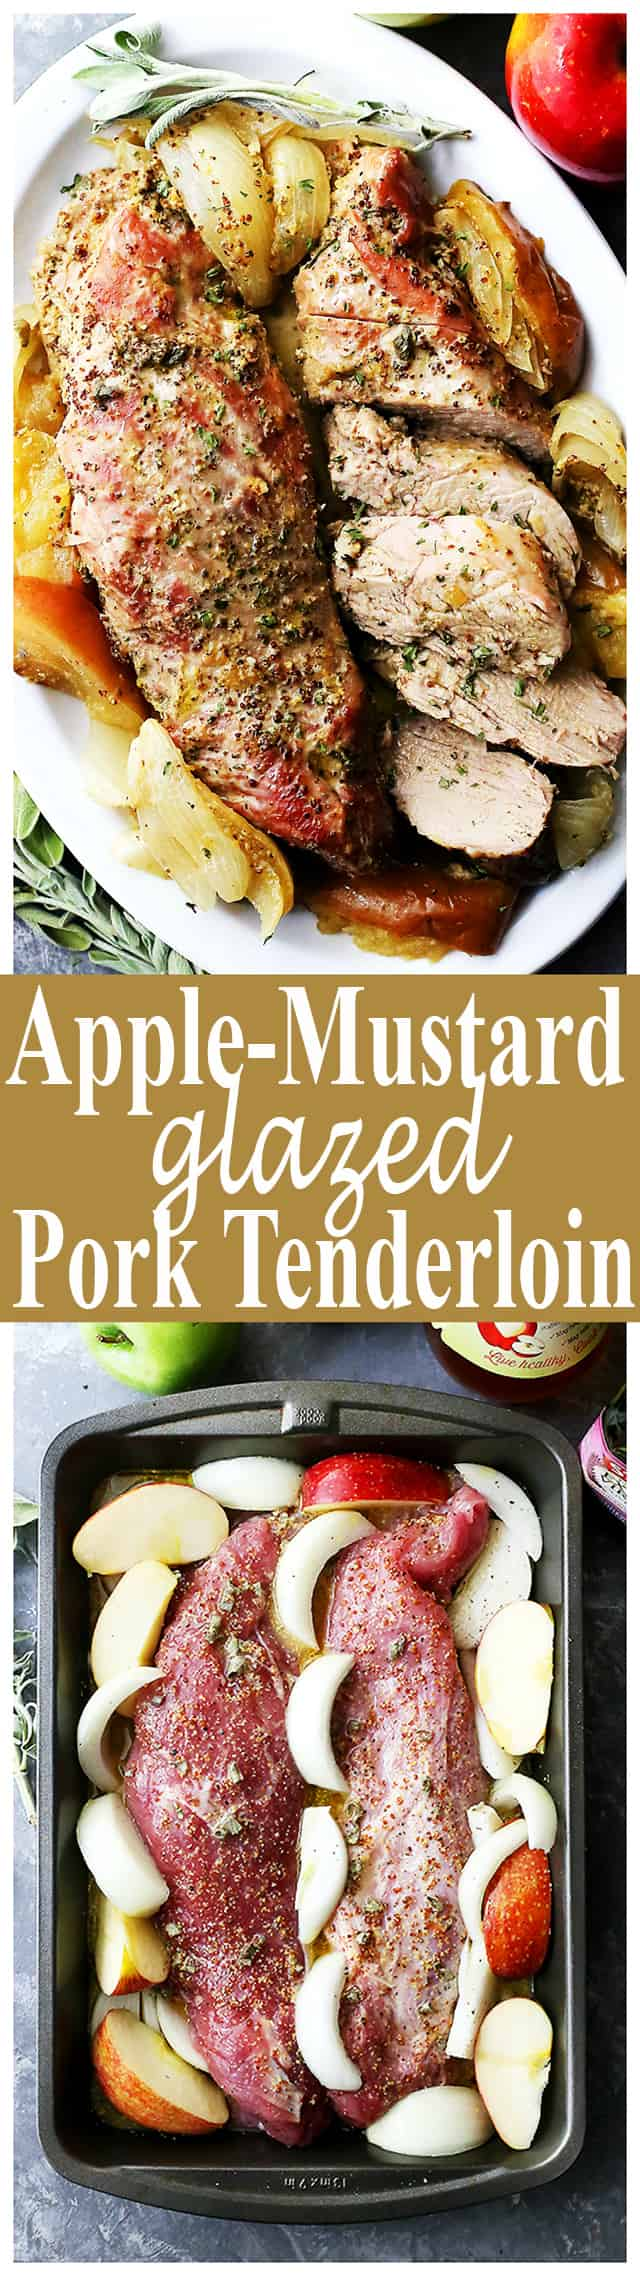 Apple Mustard Glazed Pork Tenderloin - Not only is this pork tenderloin juicy, delicious, and addictive, but it is also very, very easy to make! Pour on the apple-mustard glaze and pop it in the oven!